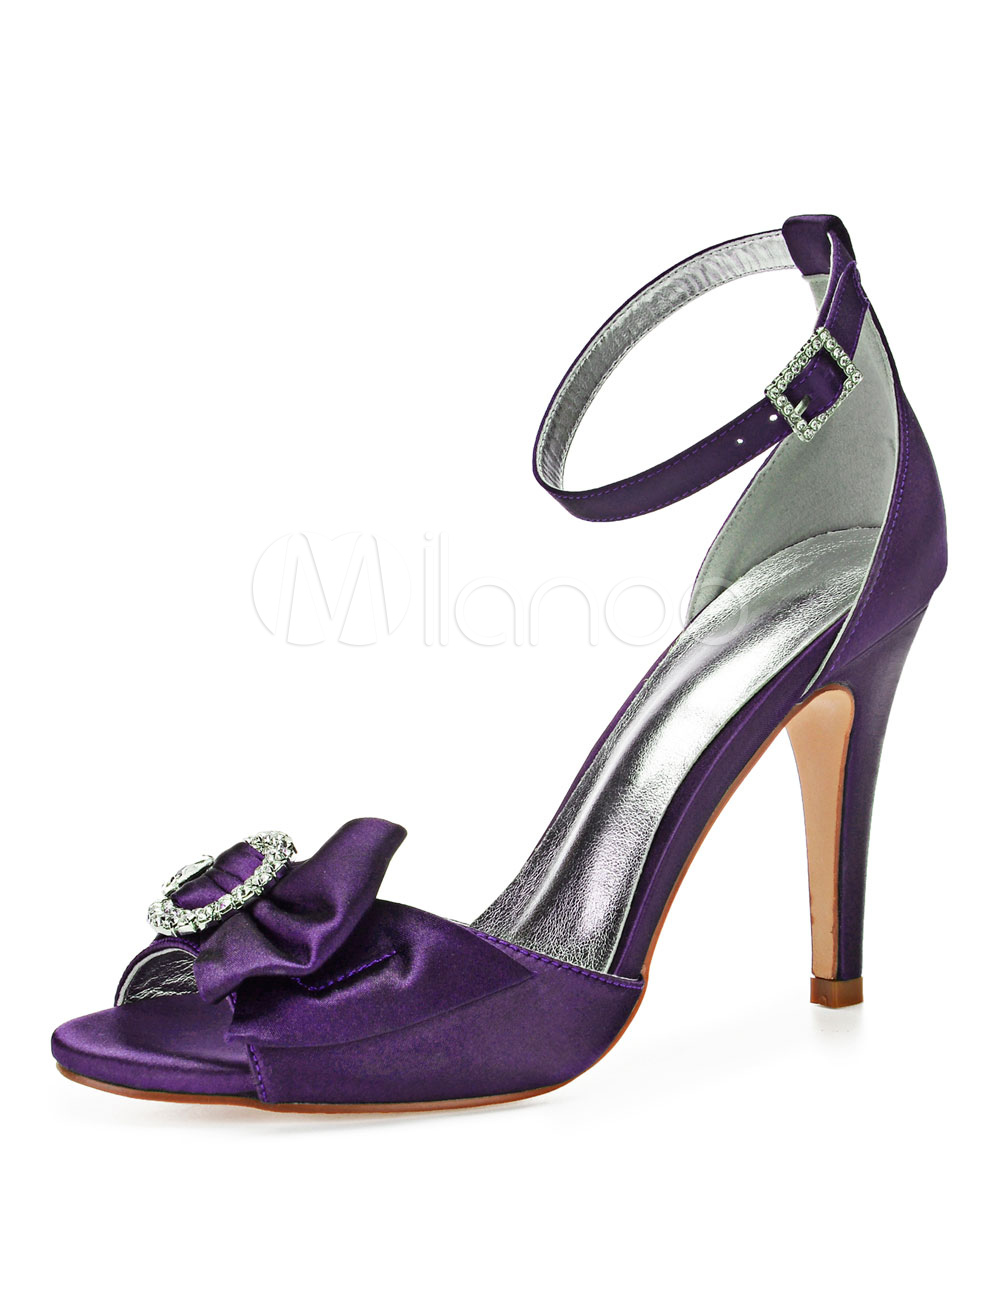 0ec8dd4f253f5 ... Satin Peep Toe Bow Rhinestones Ankle Strap Bridal Shoes High Heel Mother  Shoes. 1234. 30%OFF. Color:deep purple